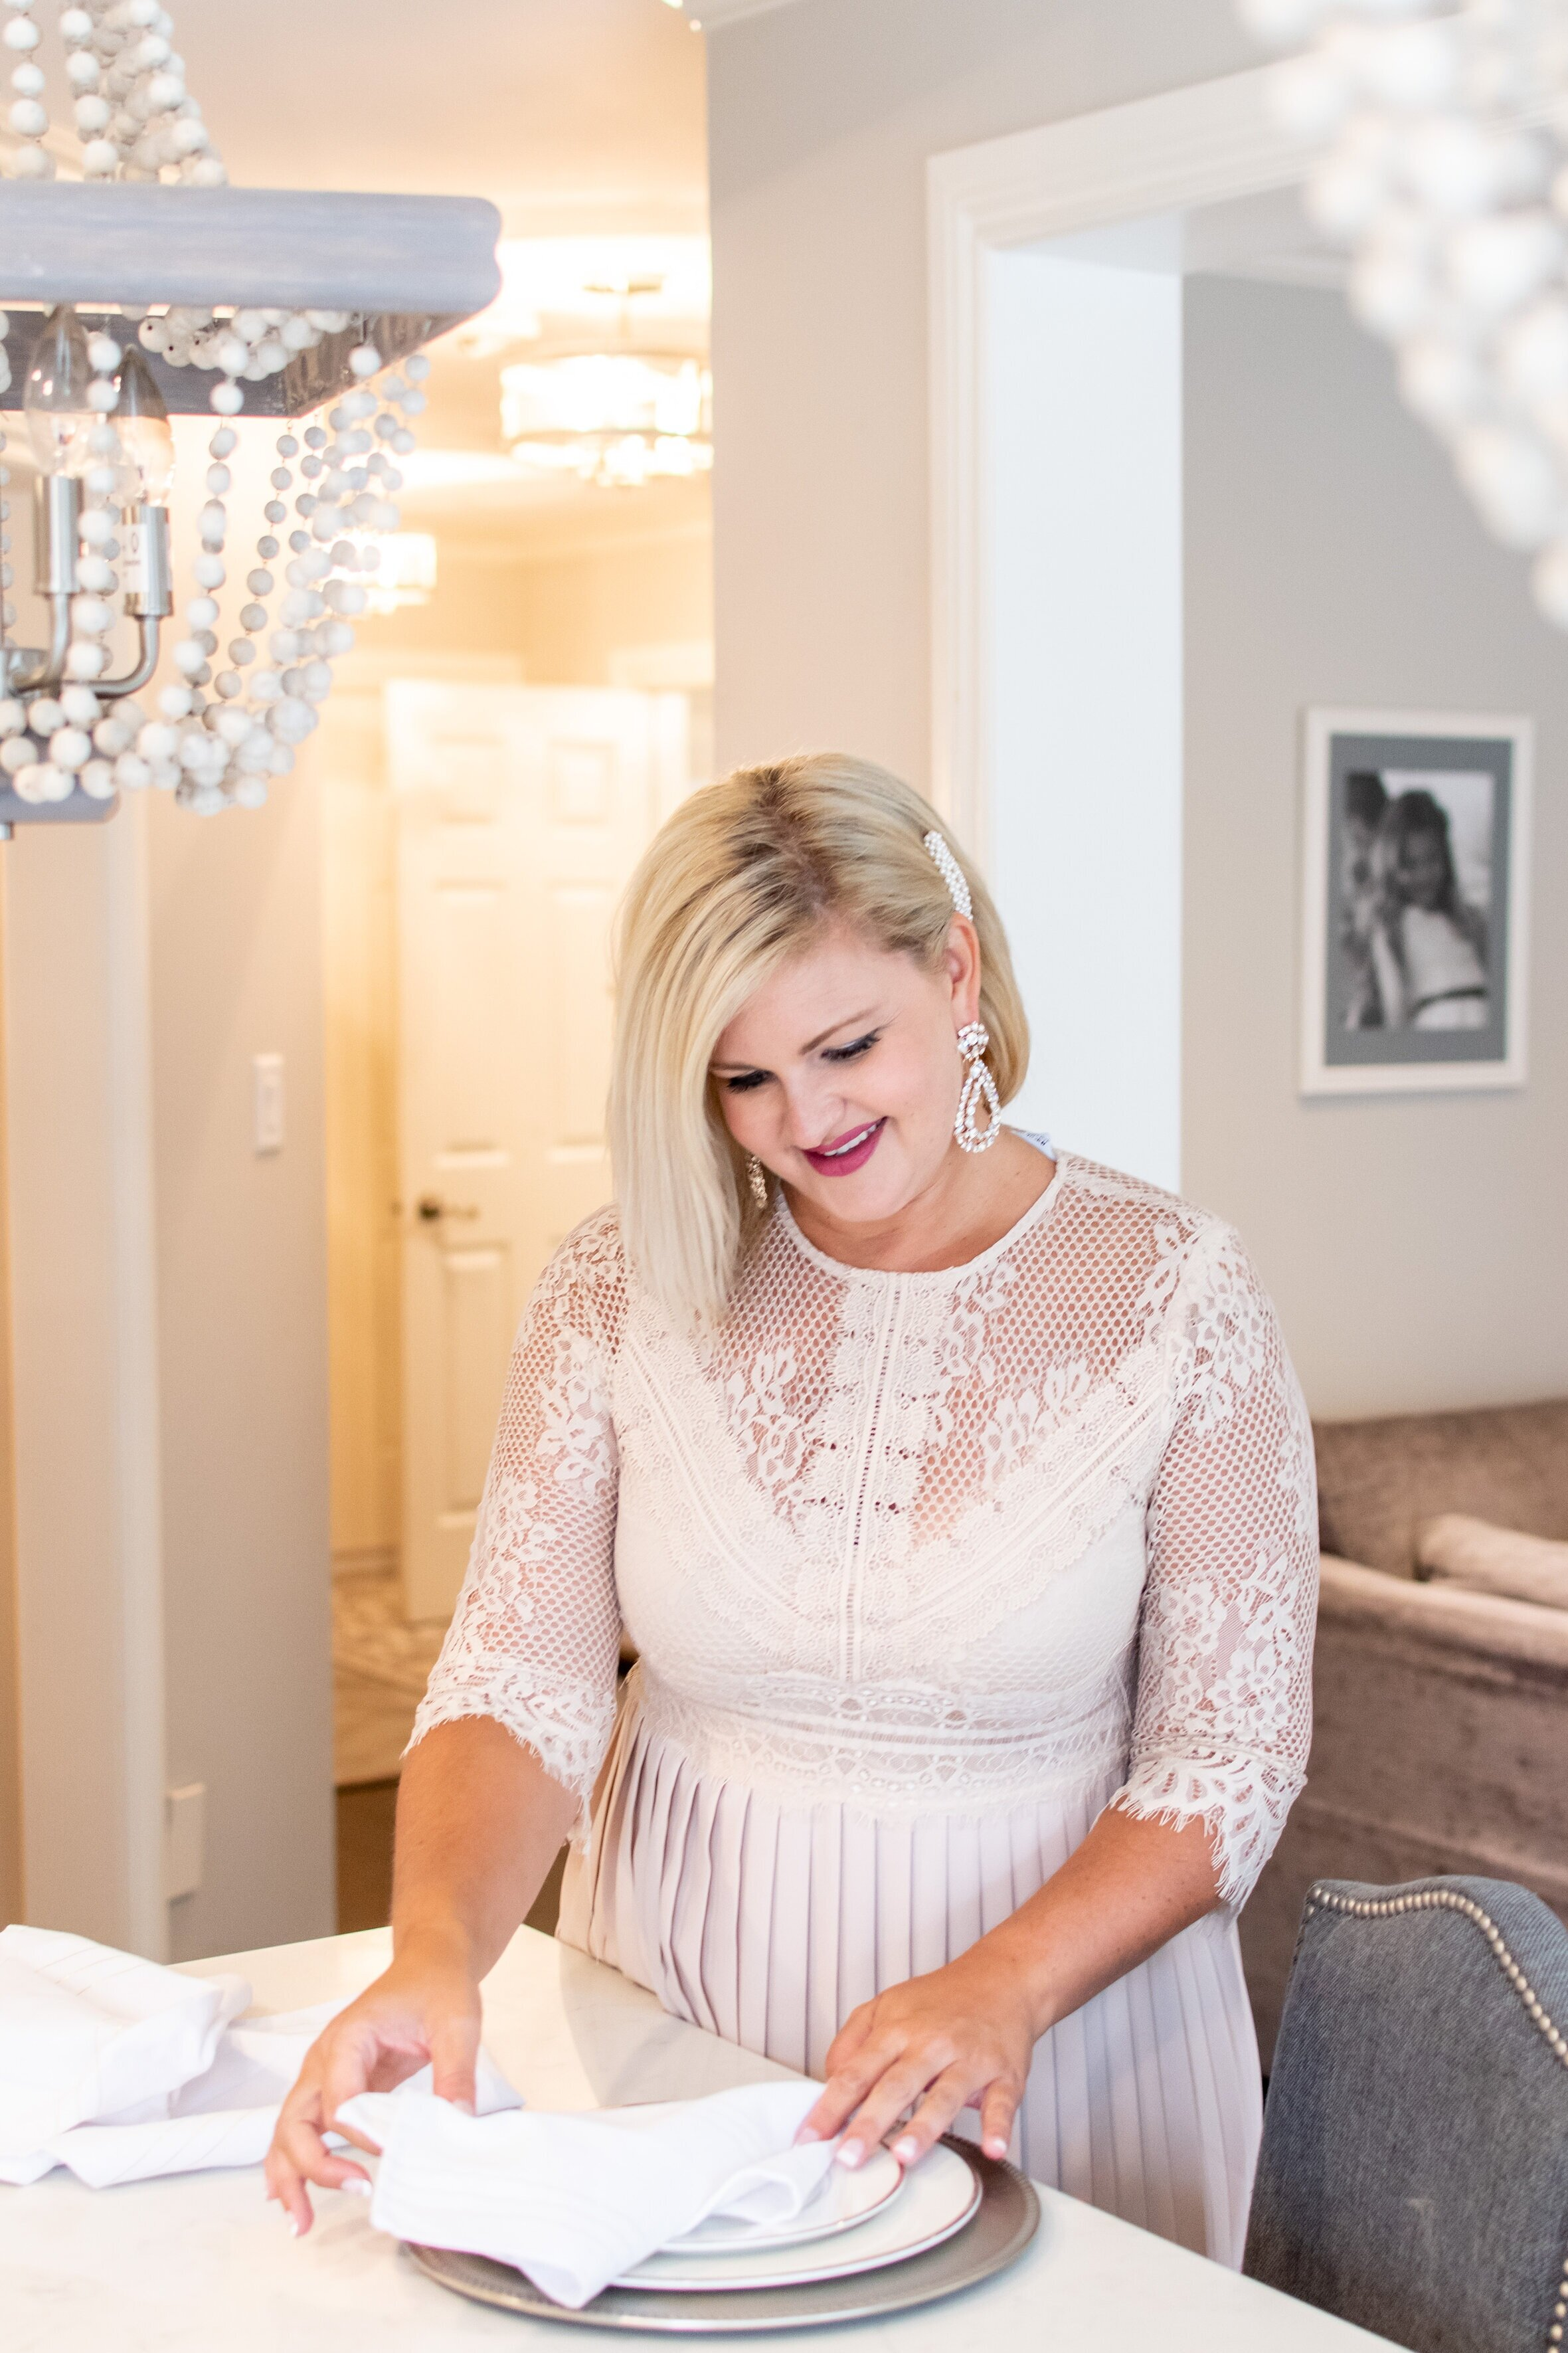 Welcome! - There are lots of big things happening over here at Elizabeth Anne Home Staging and Design! If you would like to join me in the excitement, then hop on over to my blog to read how we can grow together in 2019.Cheers,- Liz